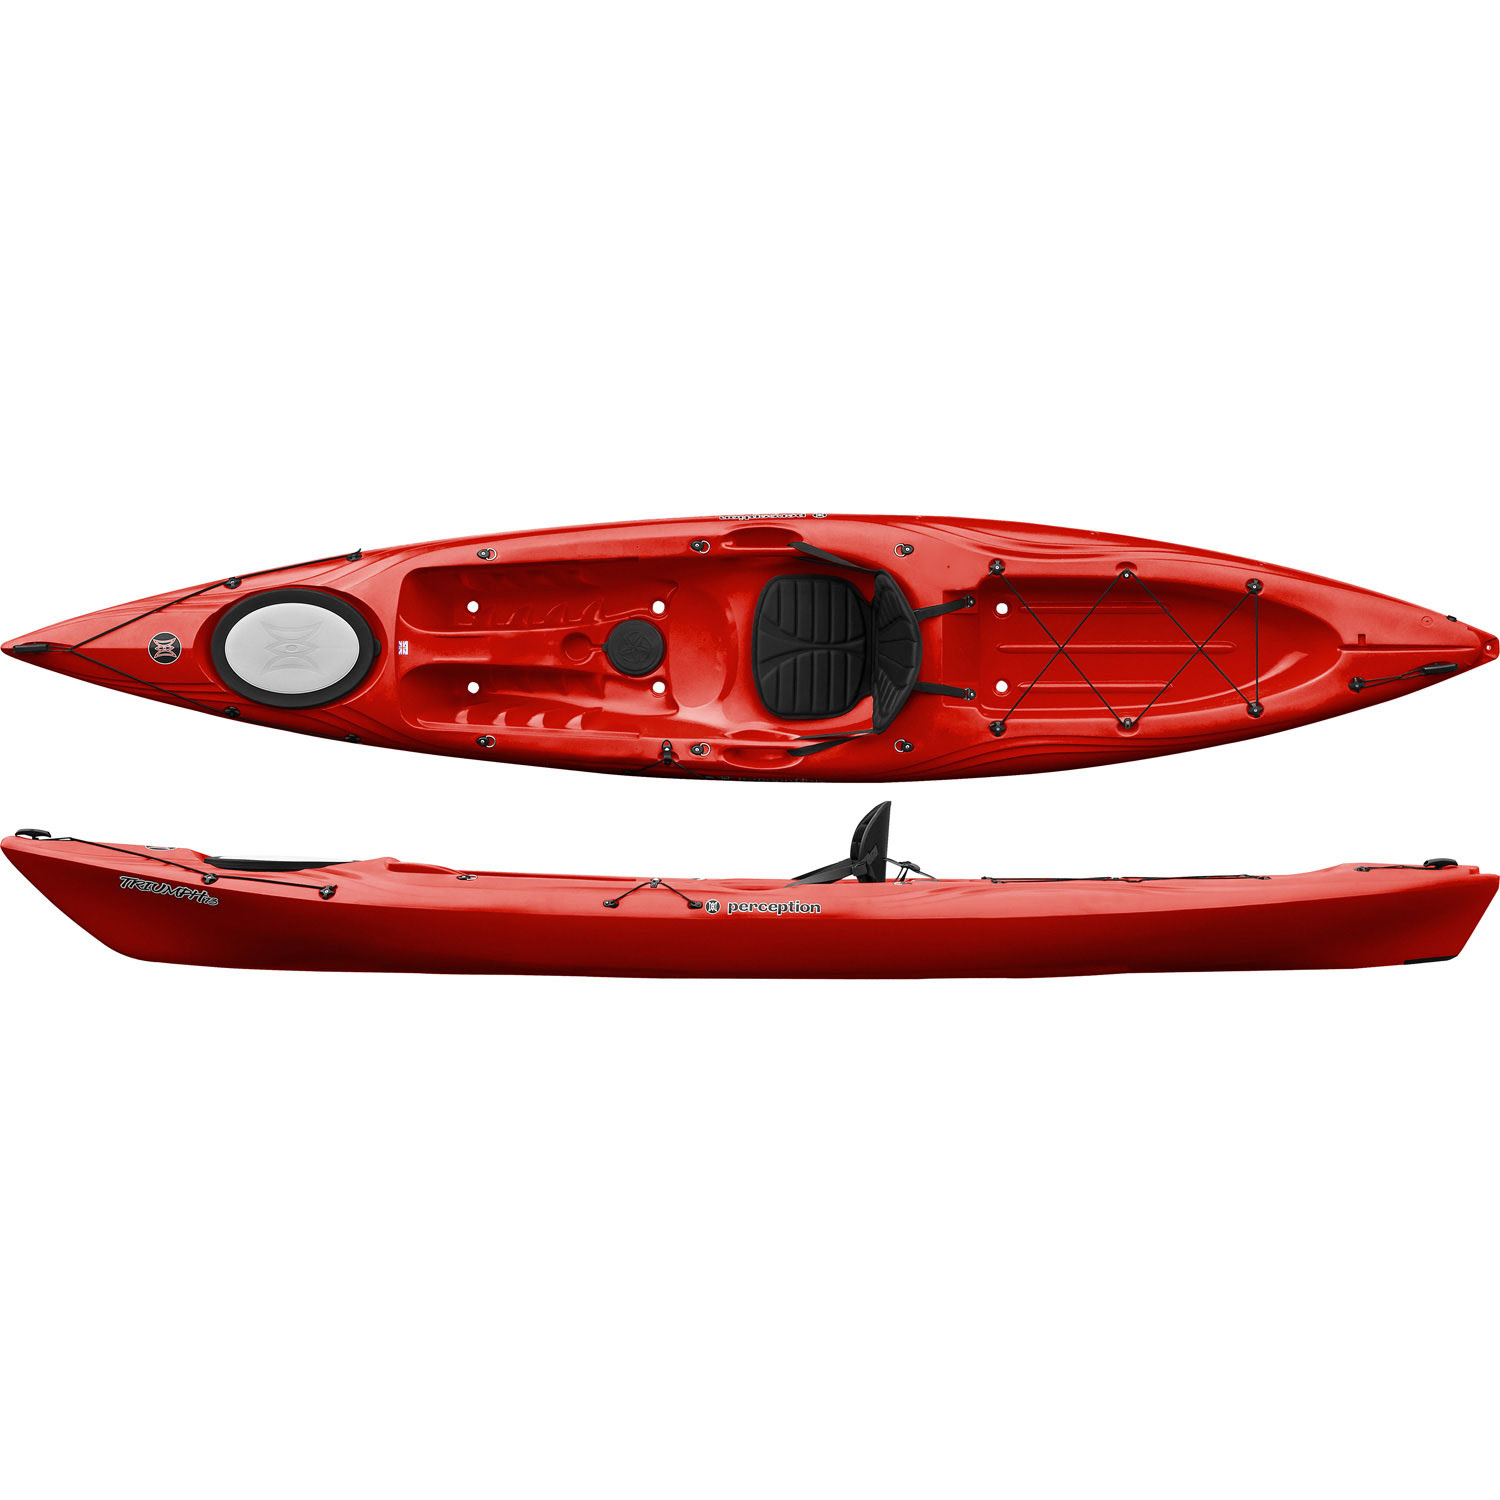 Perception Triumph 13 Sit On Top Kayak - Red - Sit on Top Kayaks